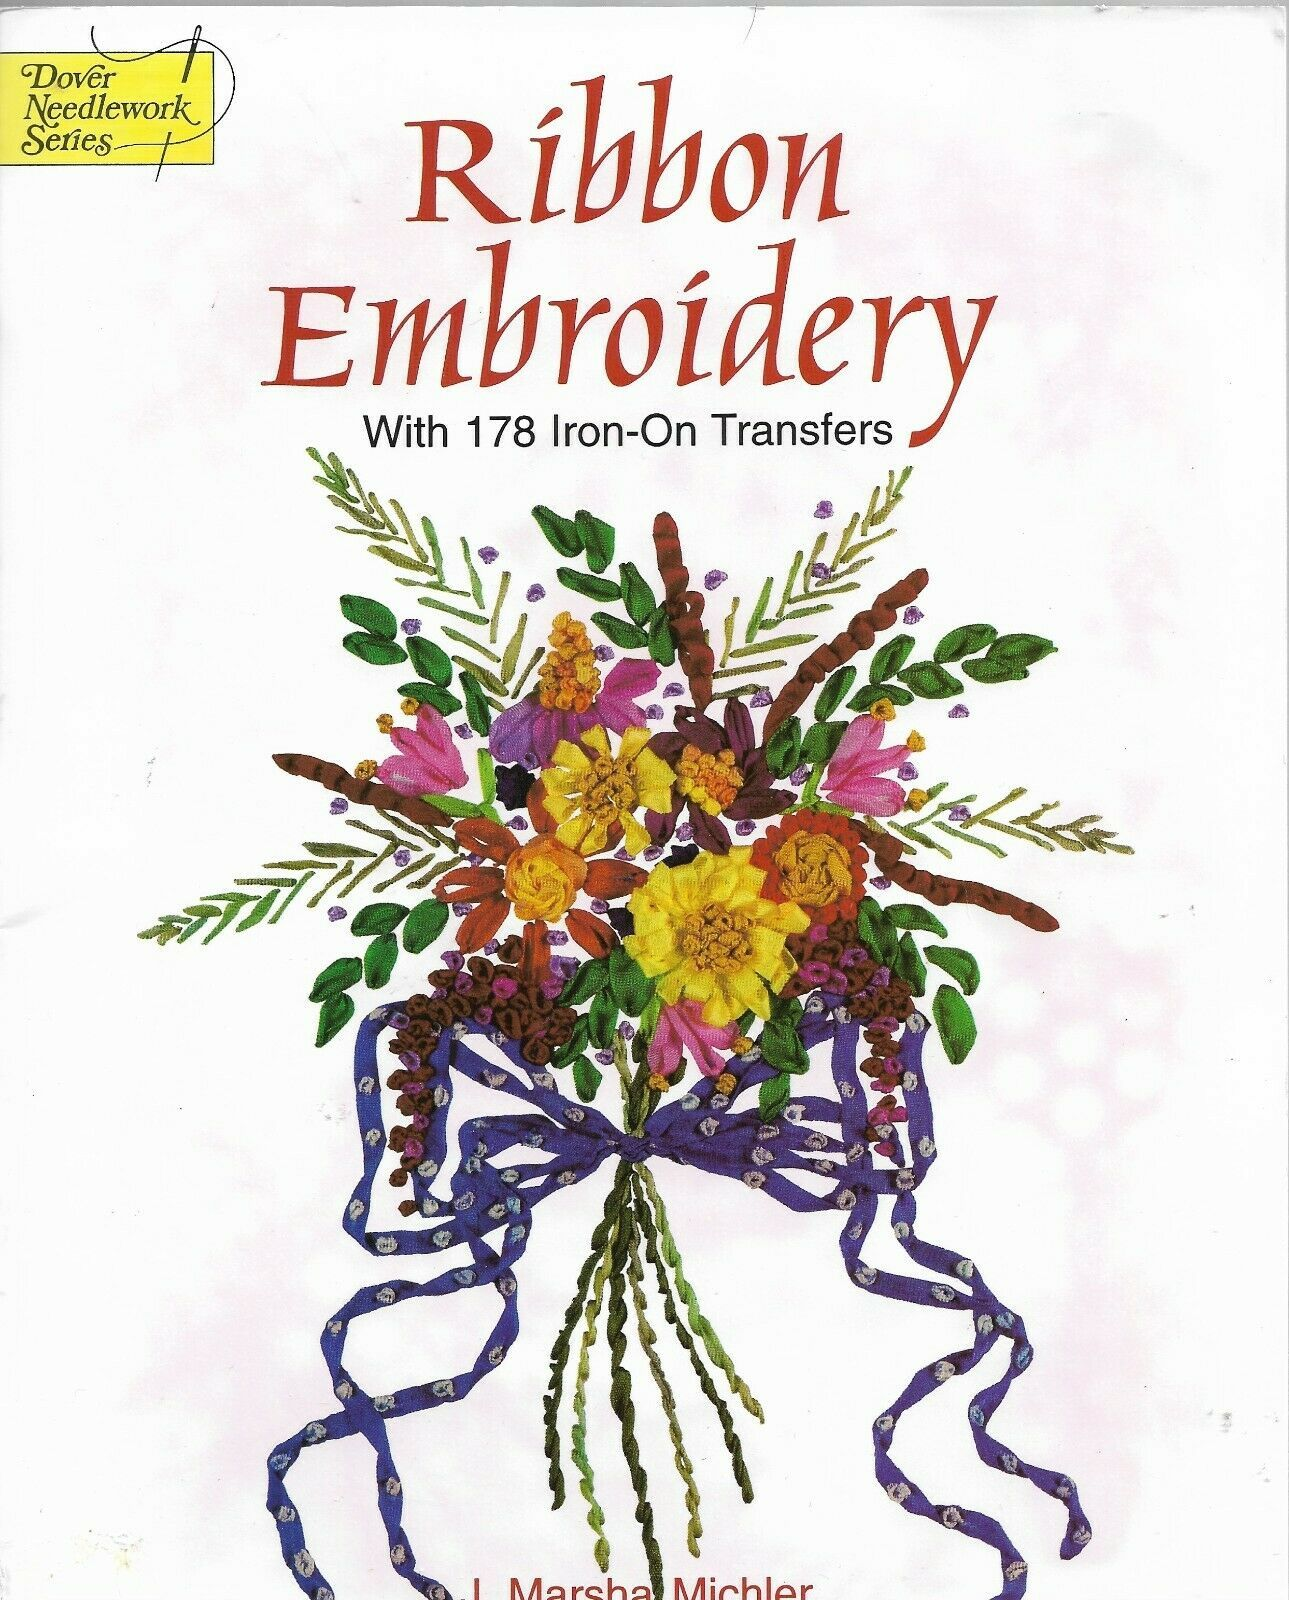 RIBBON EMBROIDERY With 178 Iron-On Transfers by J. Marsha Michler - $14.85